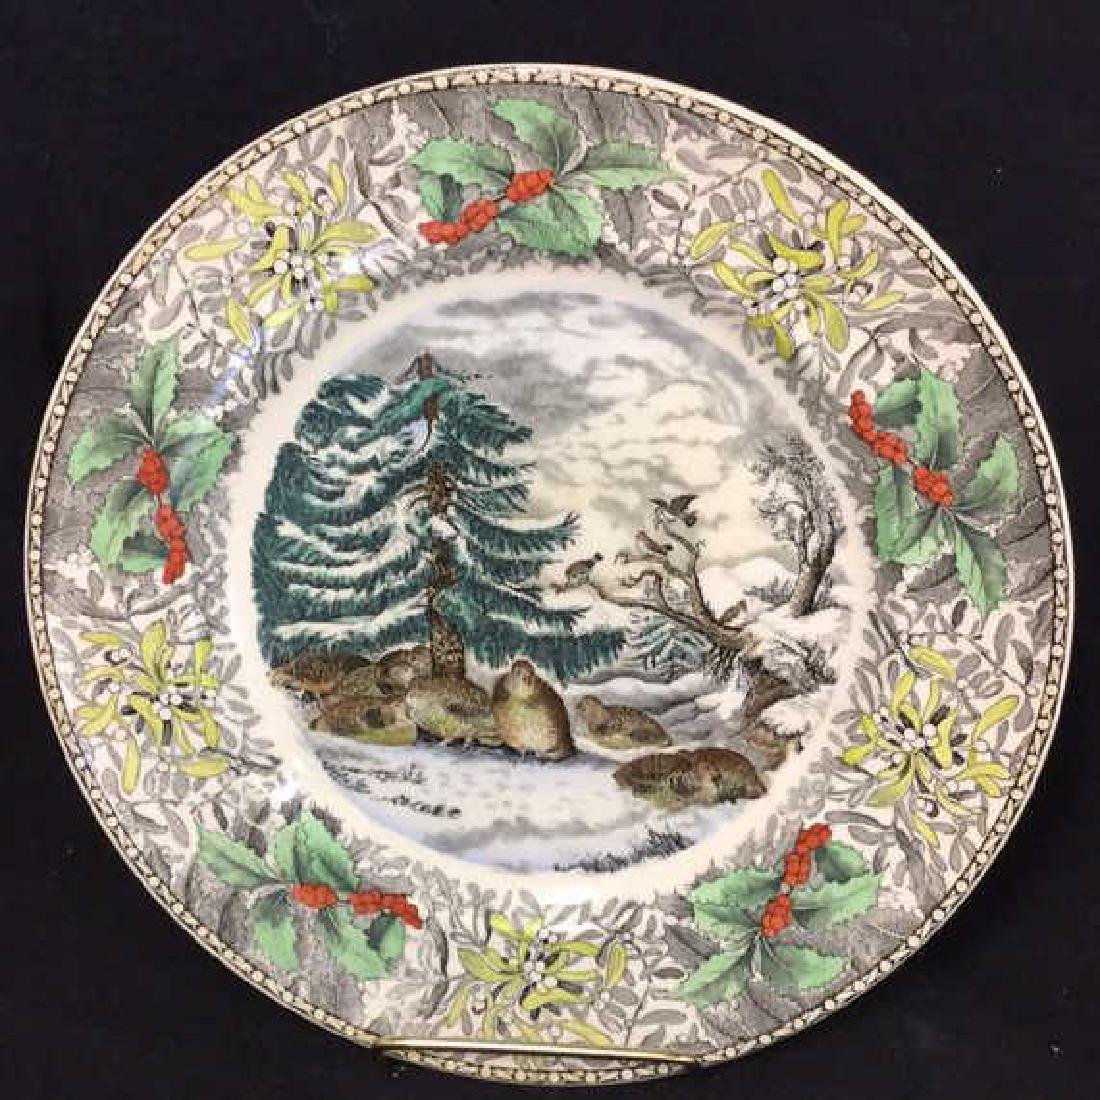 Lot 4 Currier & Ives Winter Scenes Plates - 2